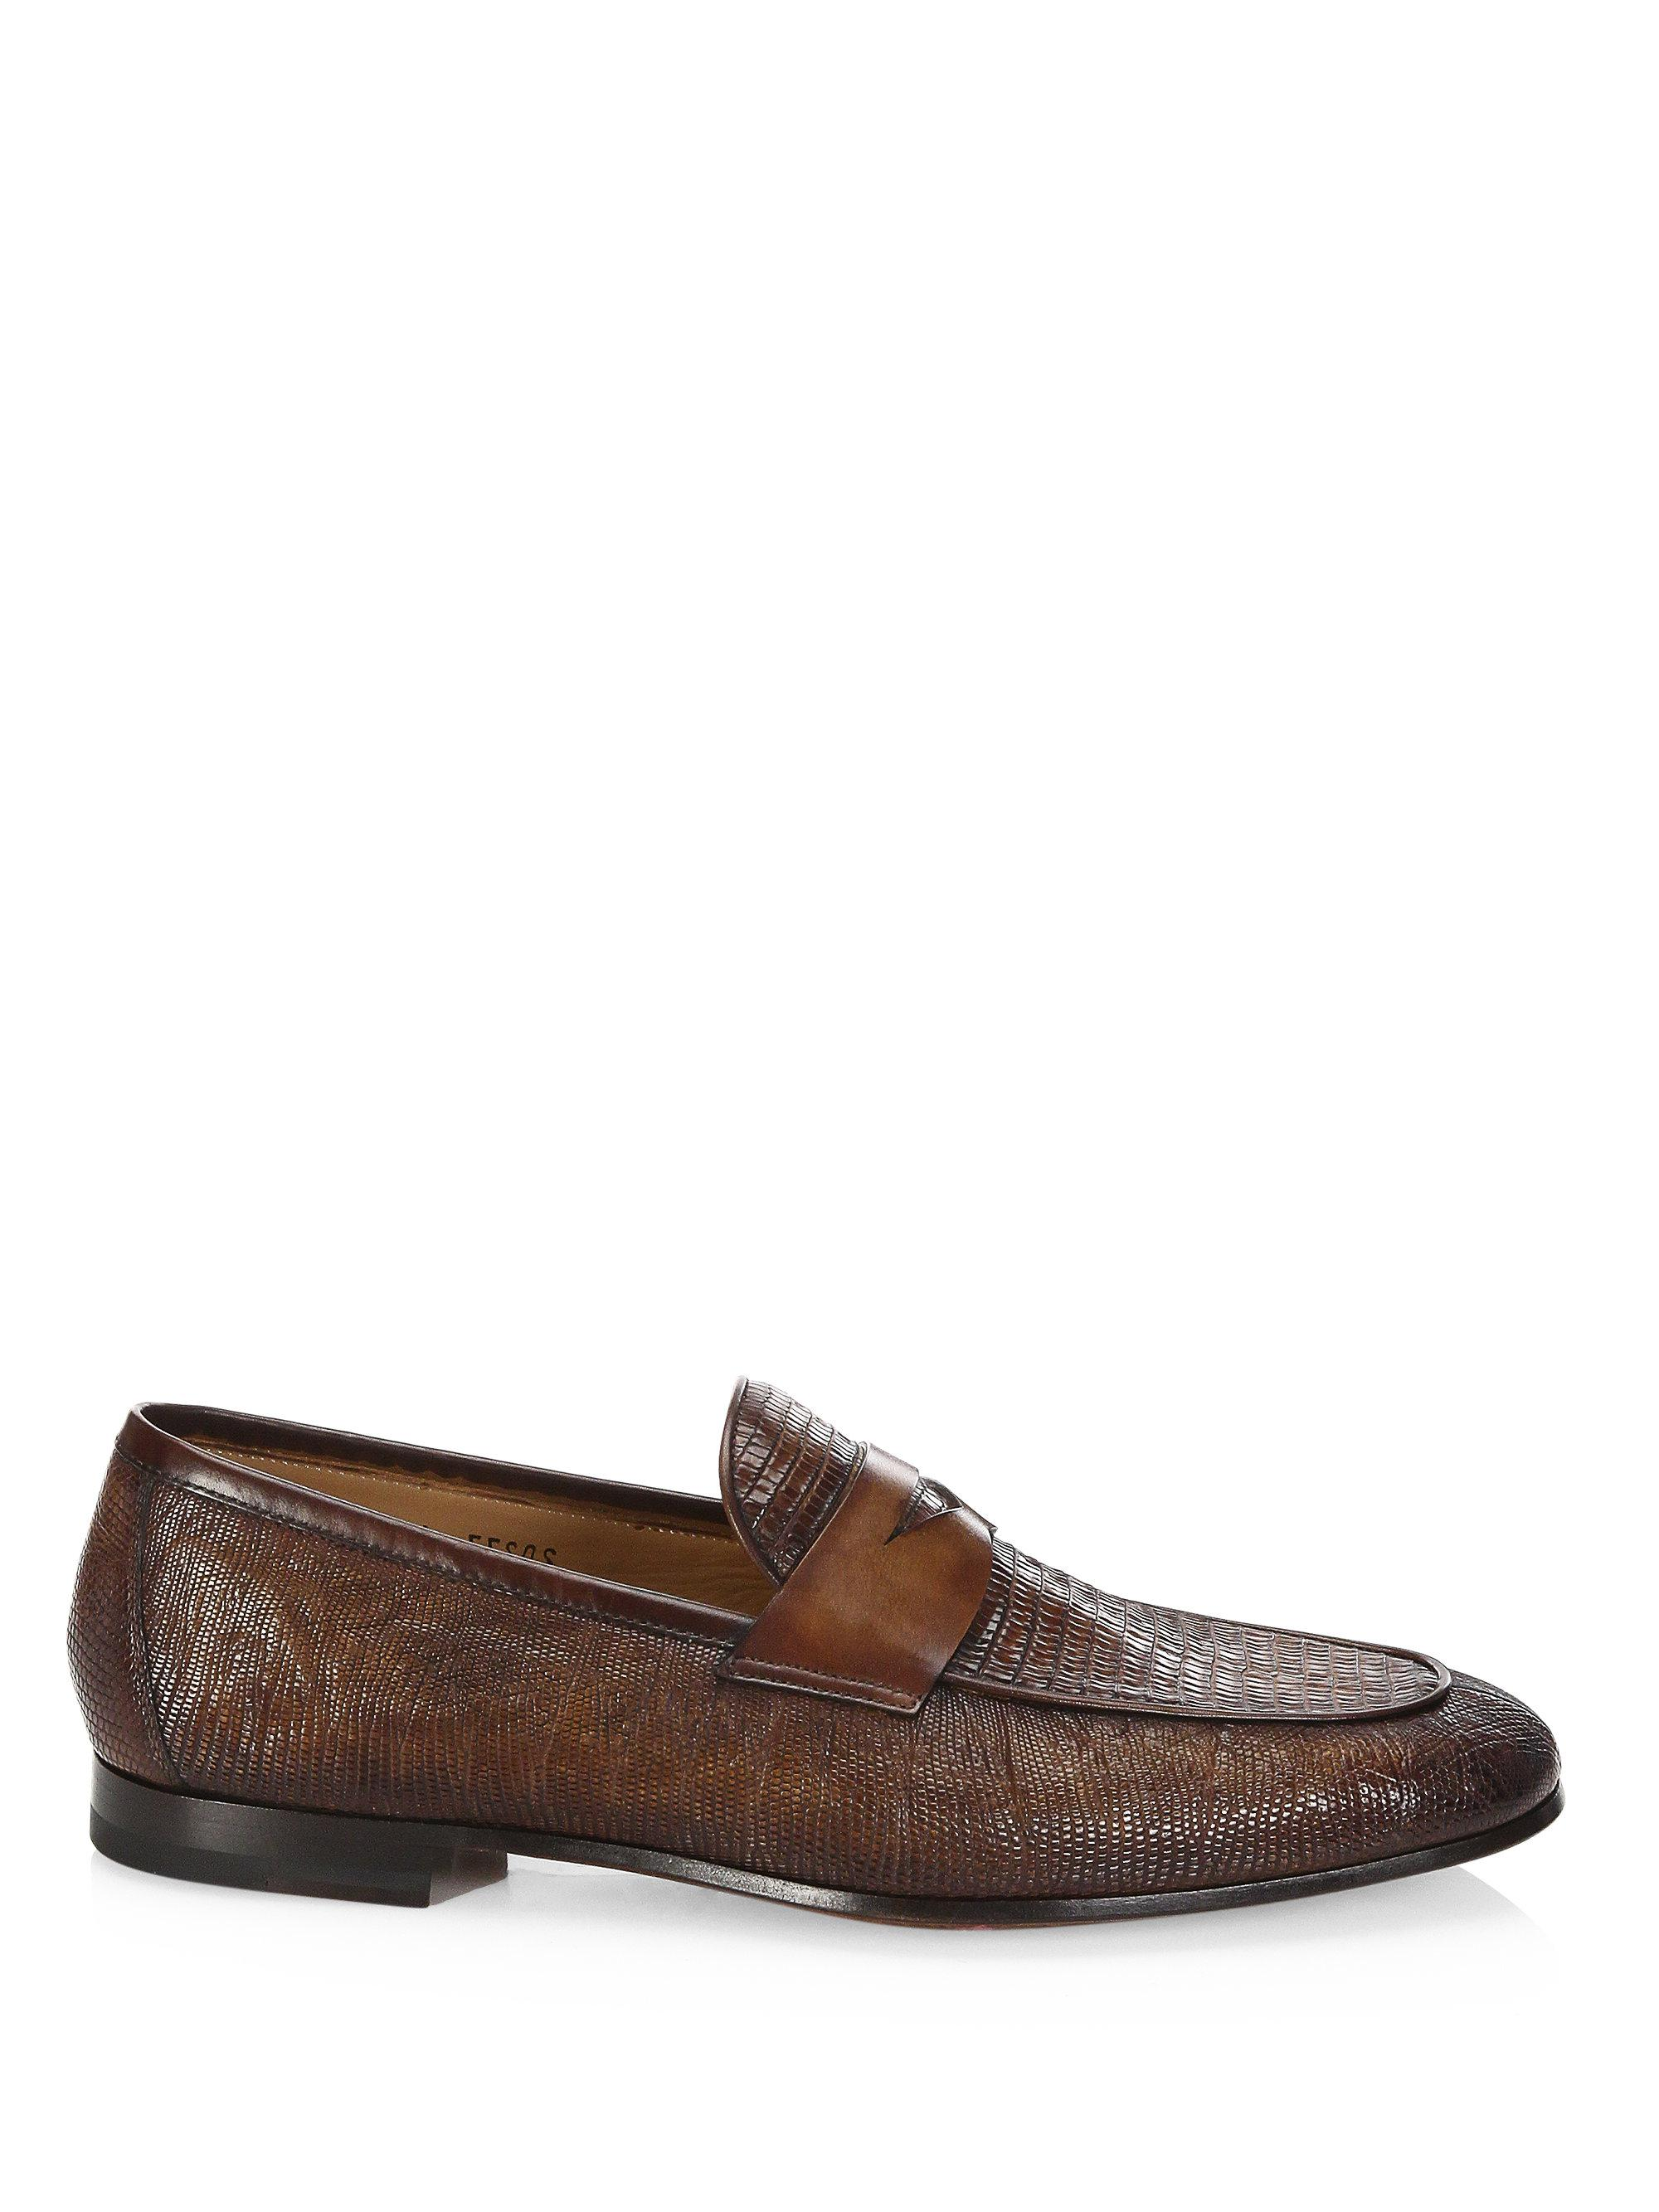 Saks Fifth AvenueCOLLECTION BY MAGNANNI Leather Double Monkstrap Loafers 4IgrS1Ki7